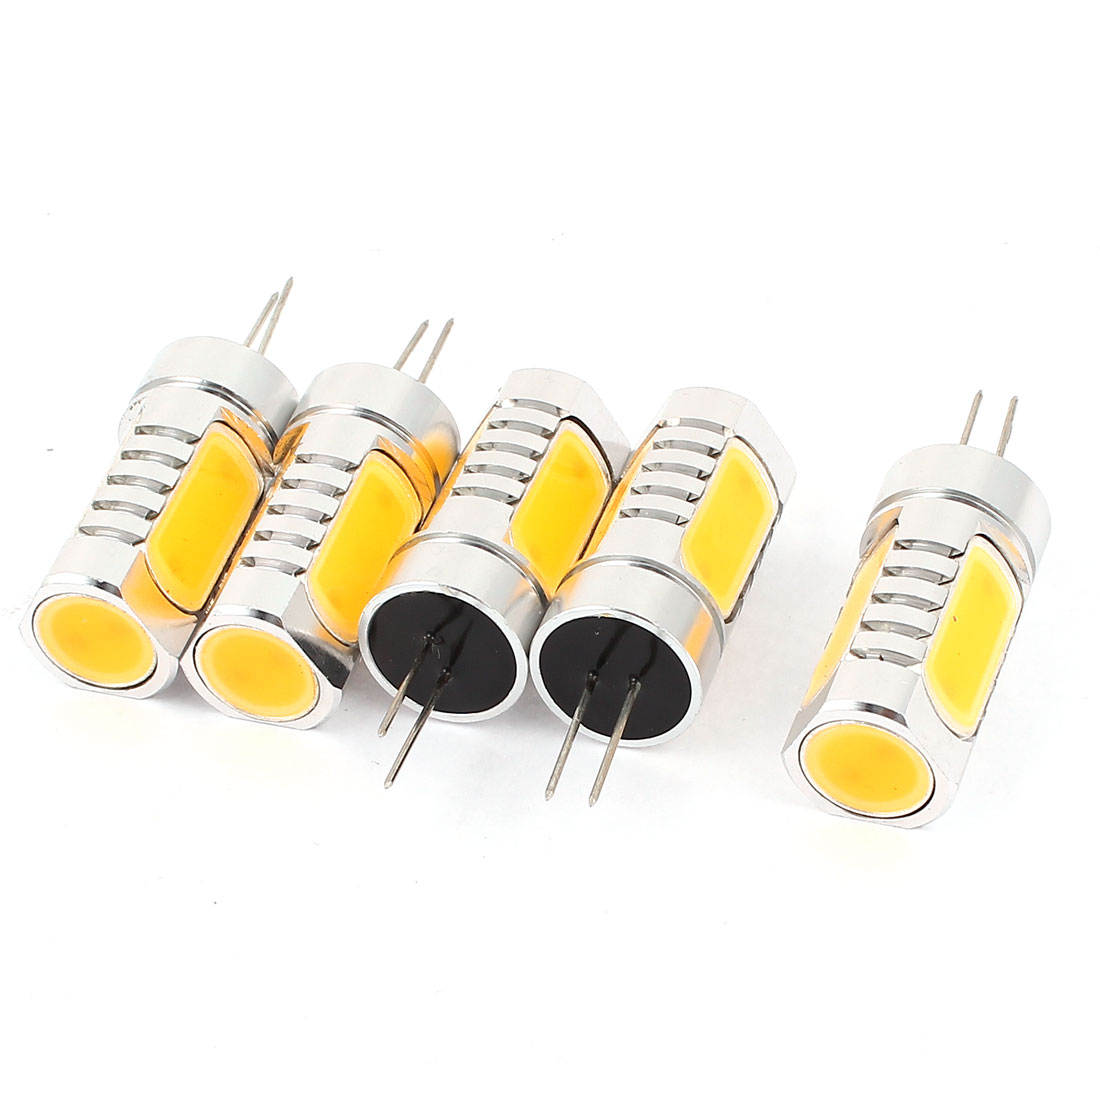 5 Pcs Energy Saving G4 6D 6W 4 LED Bulb Lamp Light Warm White